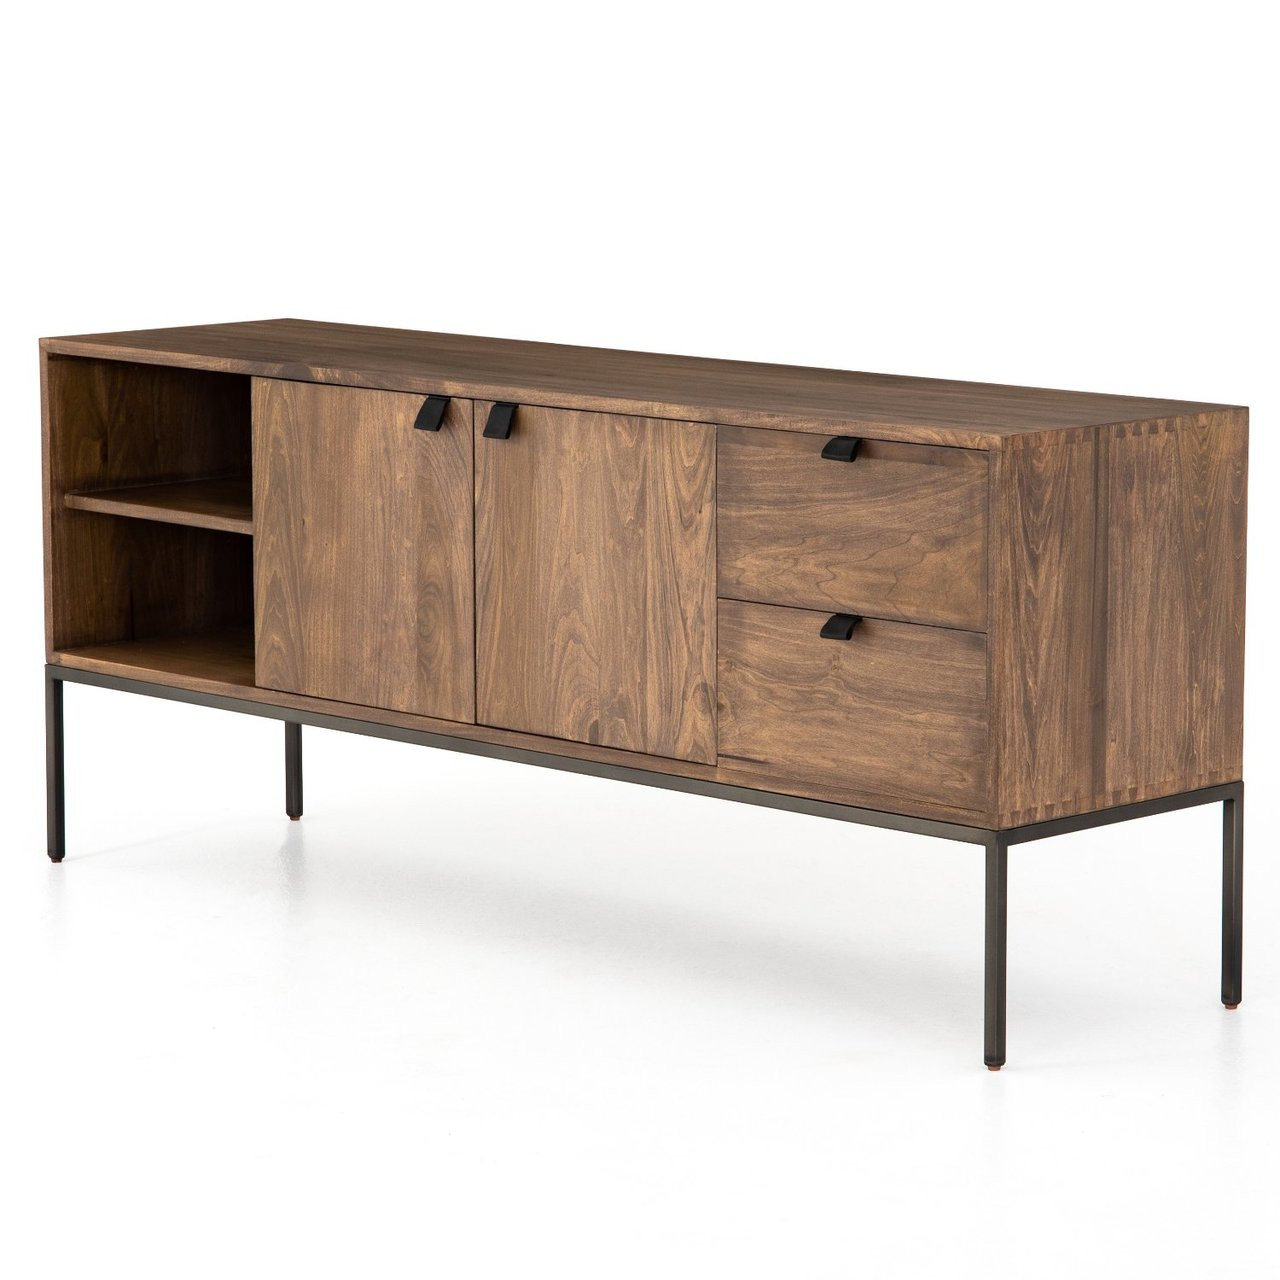 Fulton Industrial Modular Media Console Cabinet Zin Home ... on uttermost furniture, broyhill furniture, zuo modern furniture, jofran furniture,